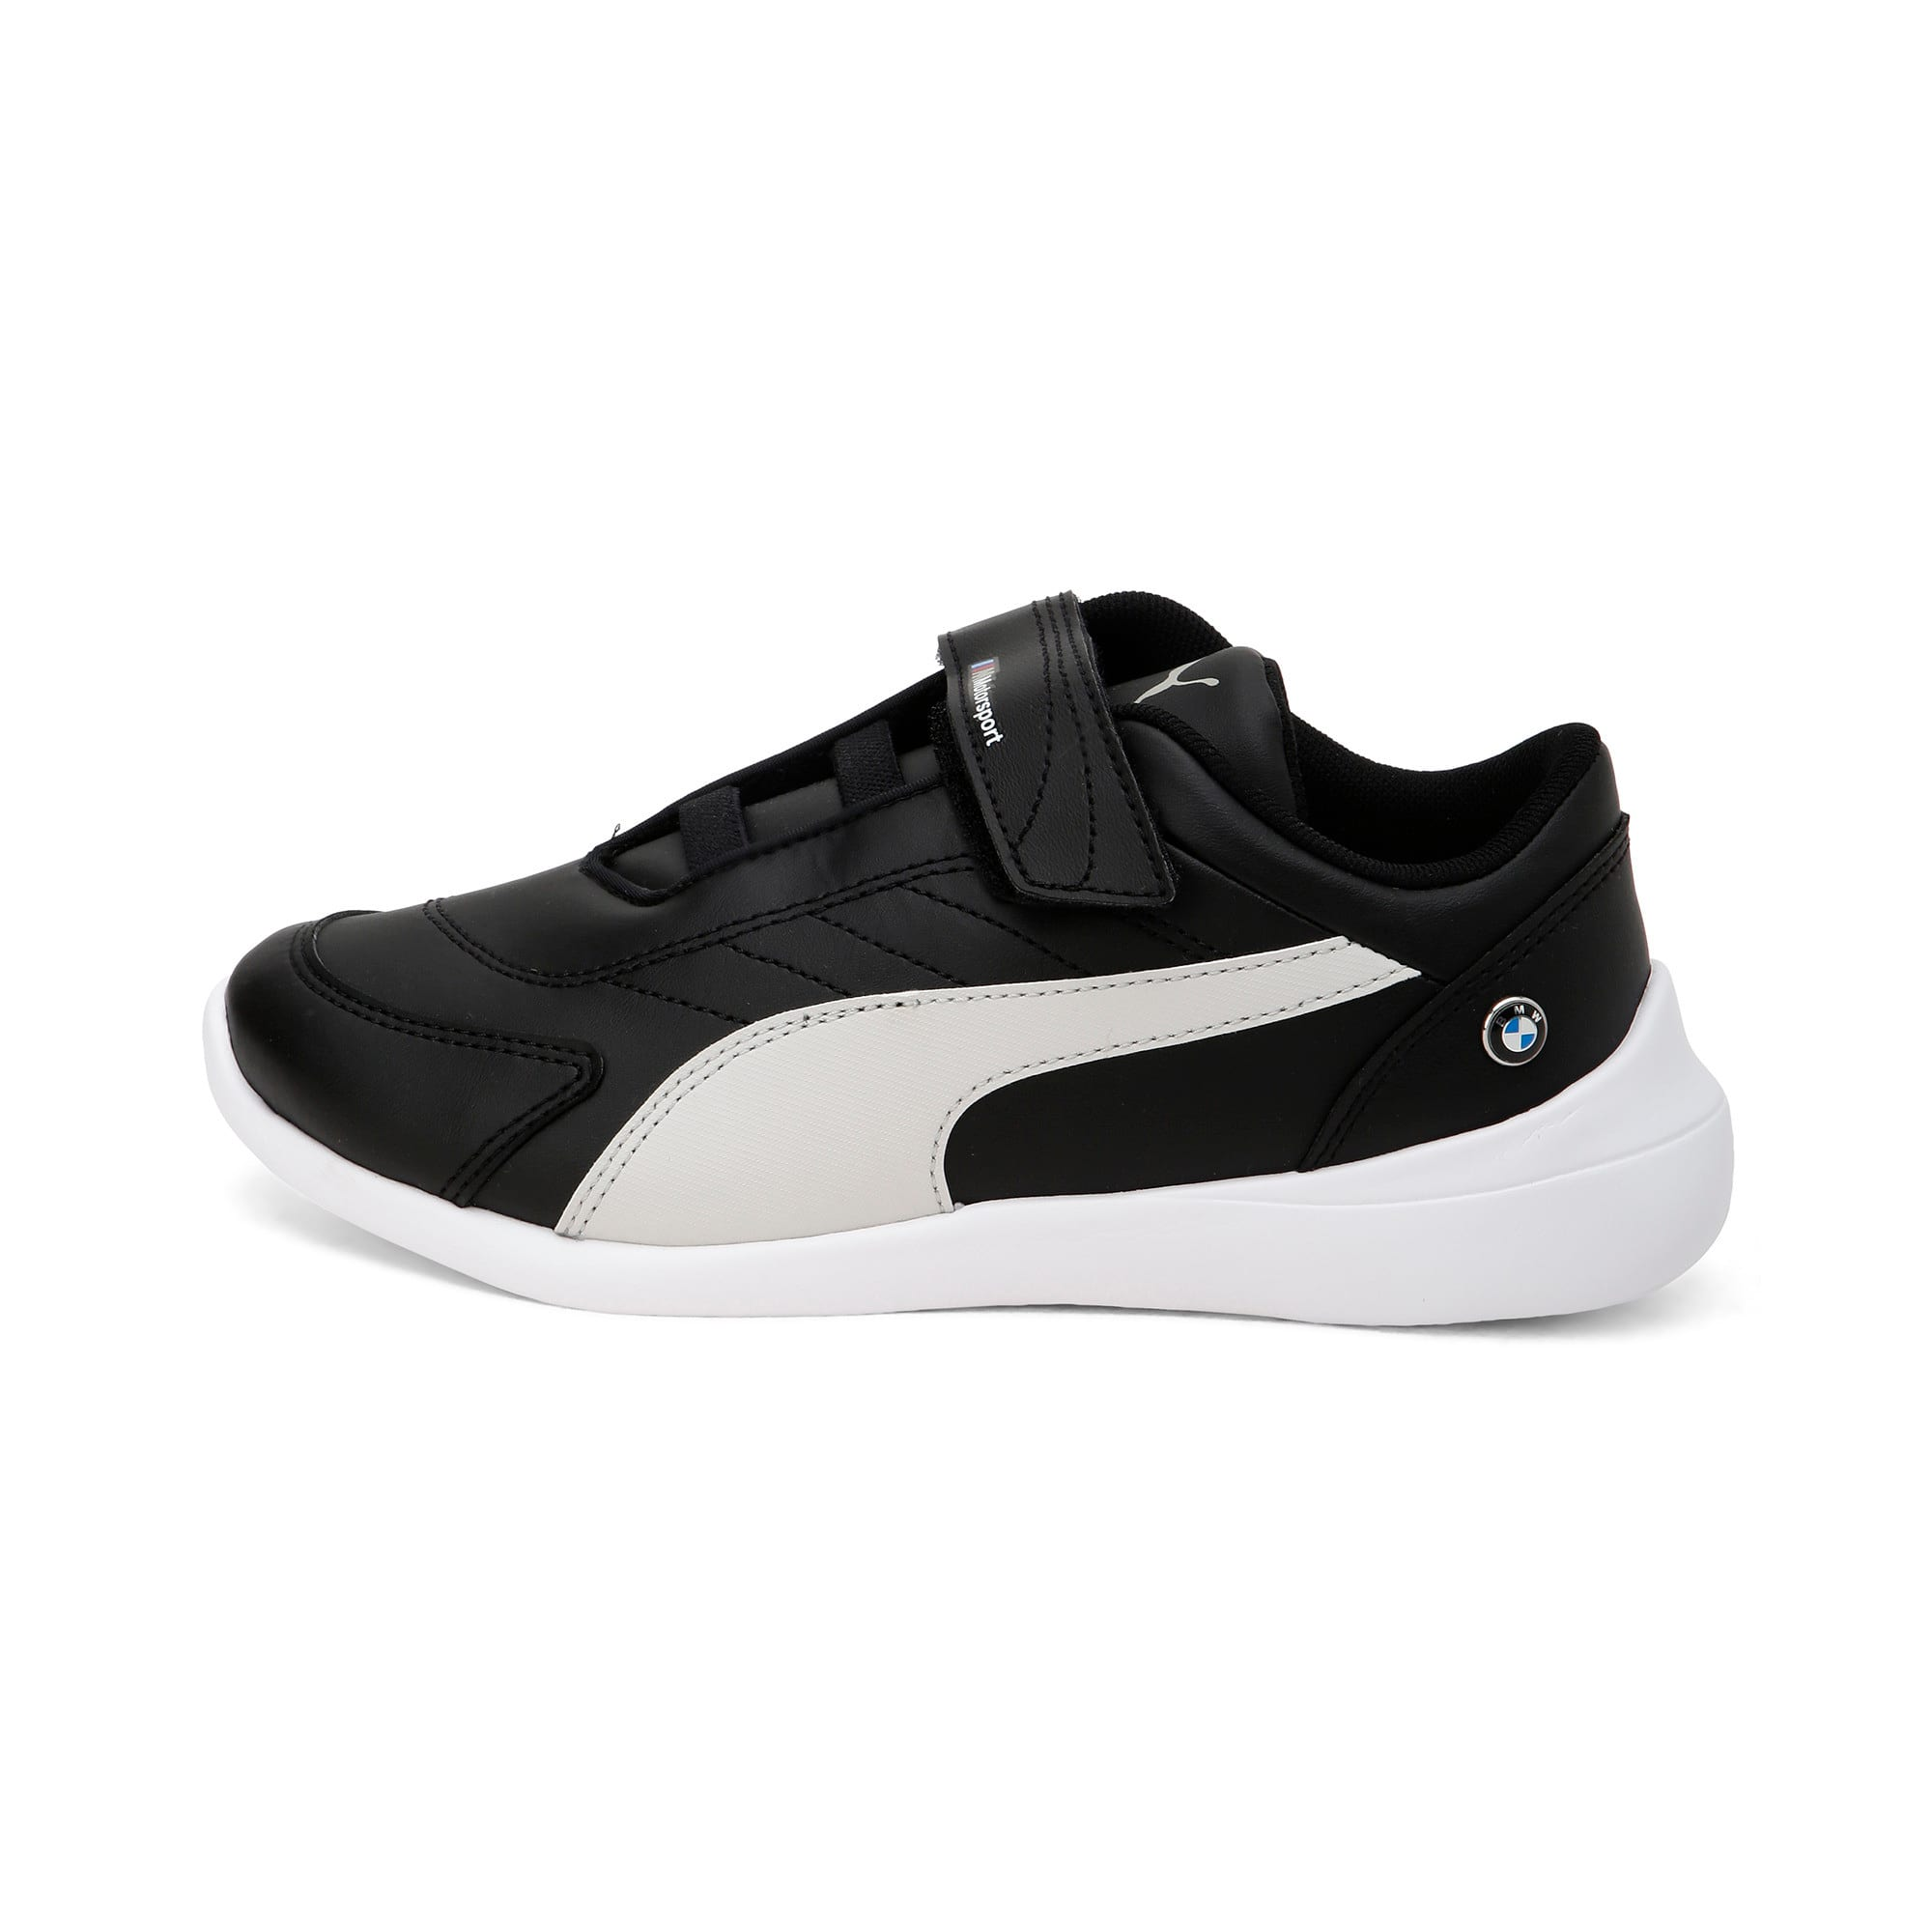 Thumbnail 1 of BMW M Kart Cat III Kids' Trainers, Puma Black-Gray Violet, medium-IND